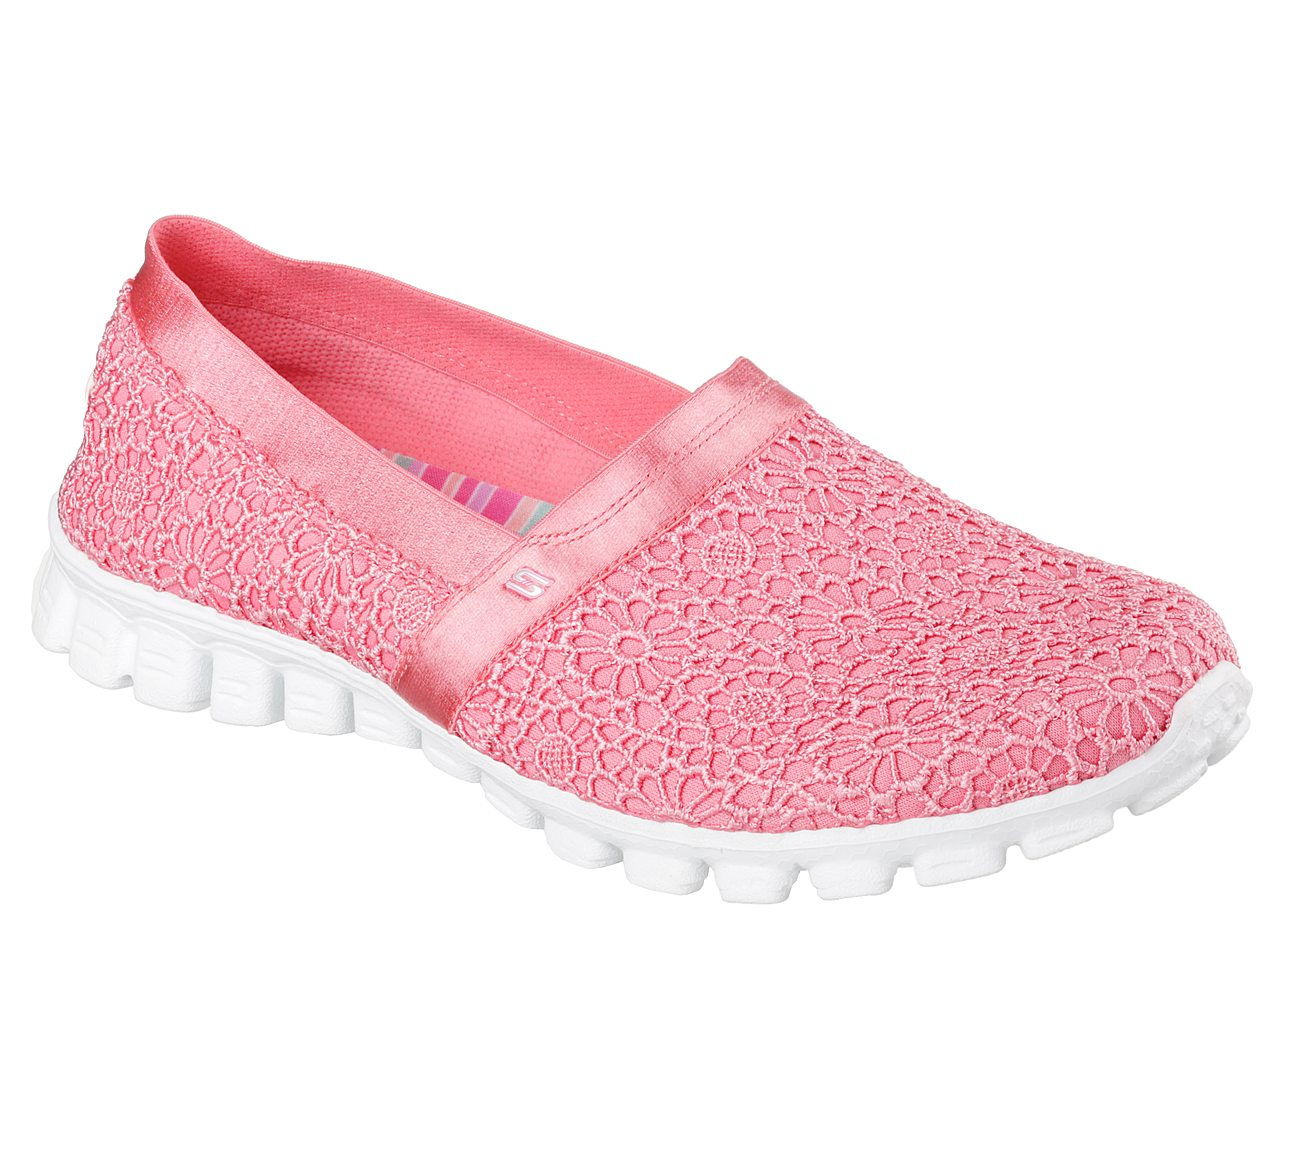 Buy Skechers Ez Flex 2 Make Believe, Women's Slippers